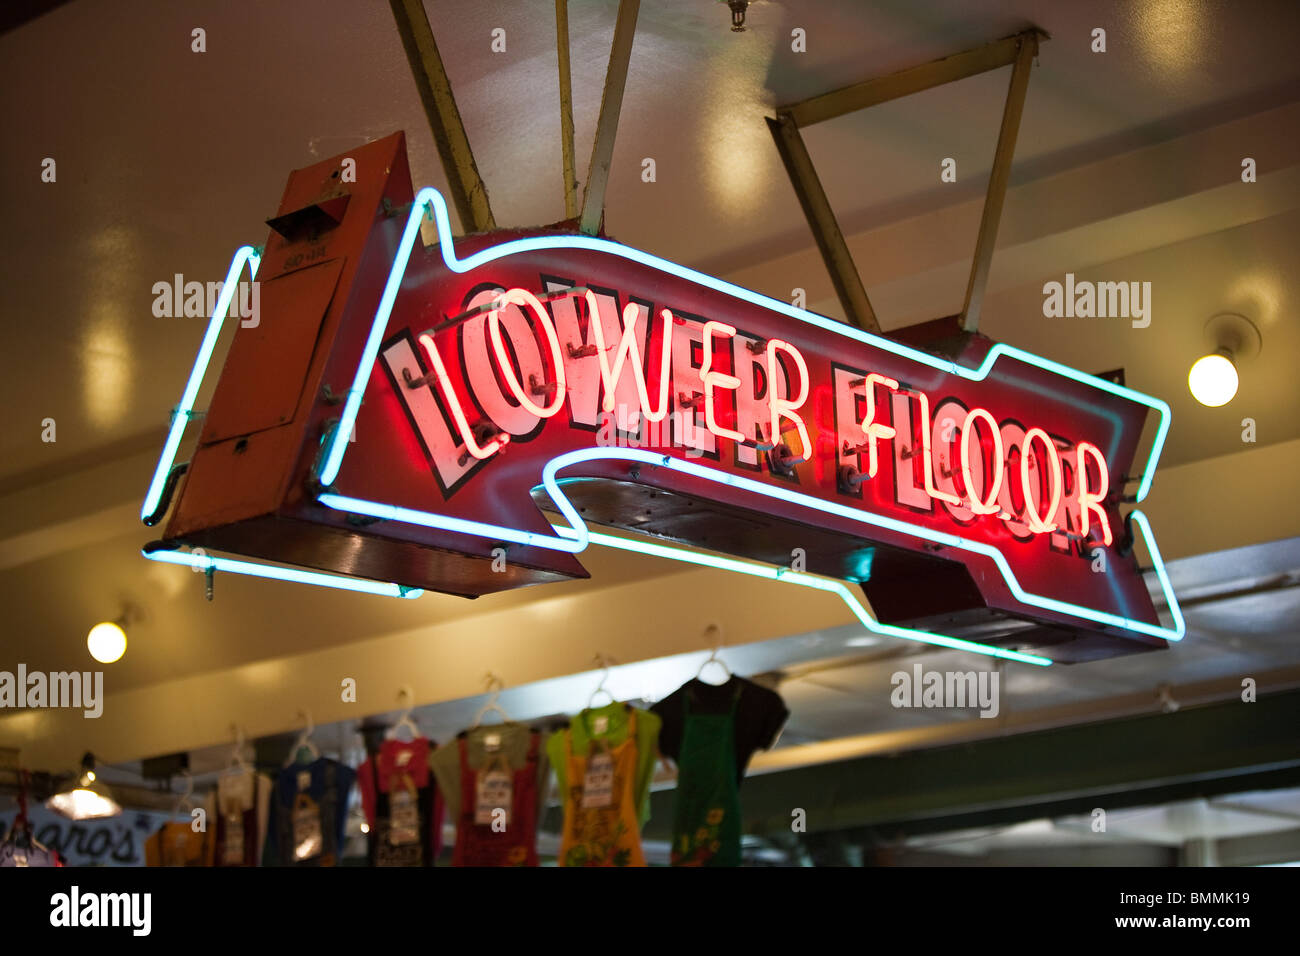 Neon Sign 'Lower Floor' at Pike Place Market - Seattle, Washington - Stock Image